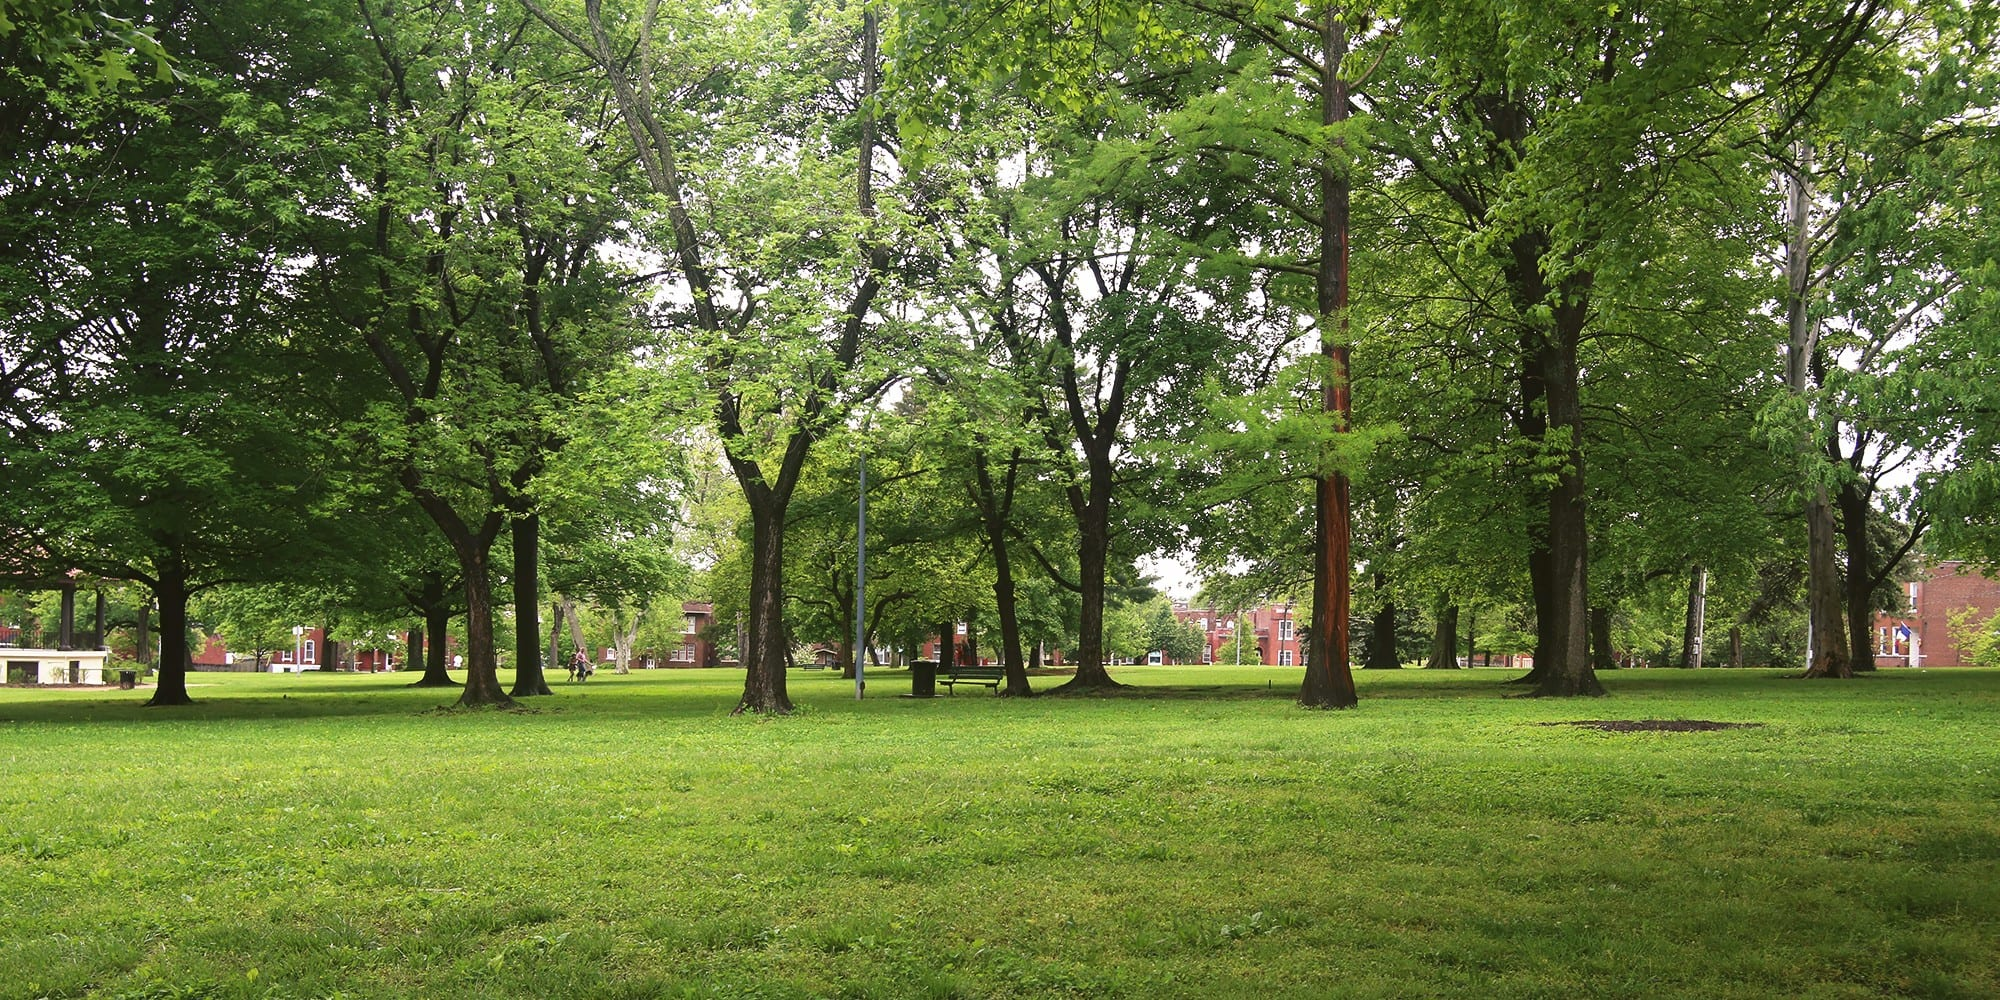 Green grass and leaves in Gravois Park. Photo by Paul Sableman.